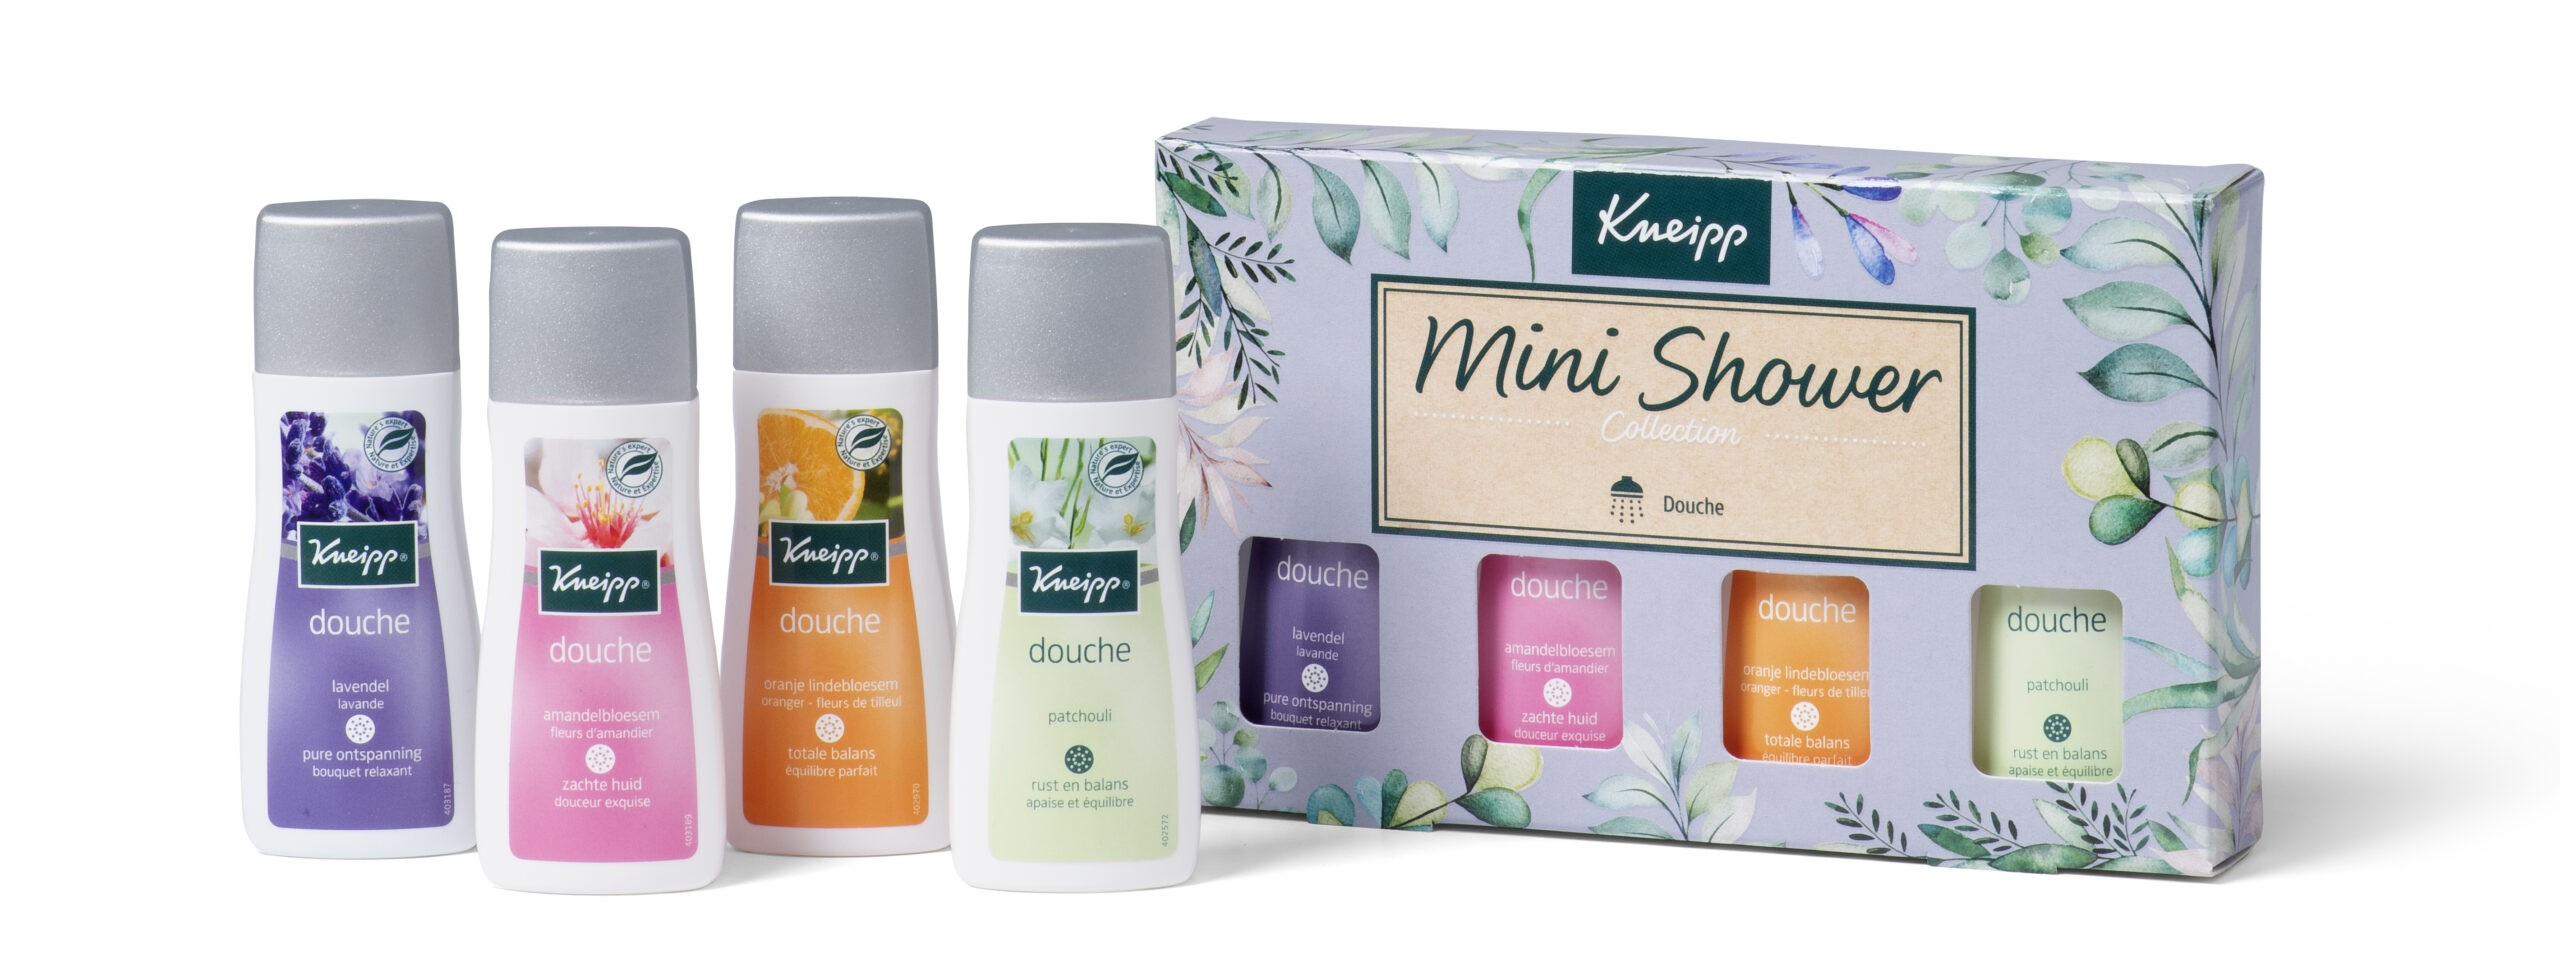 kneipp mini shower collection